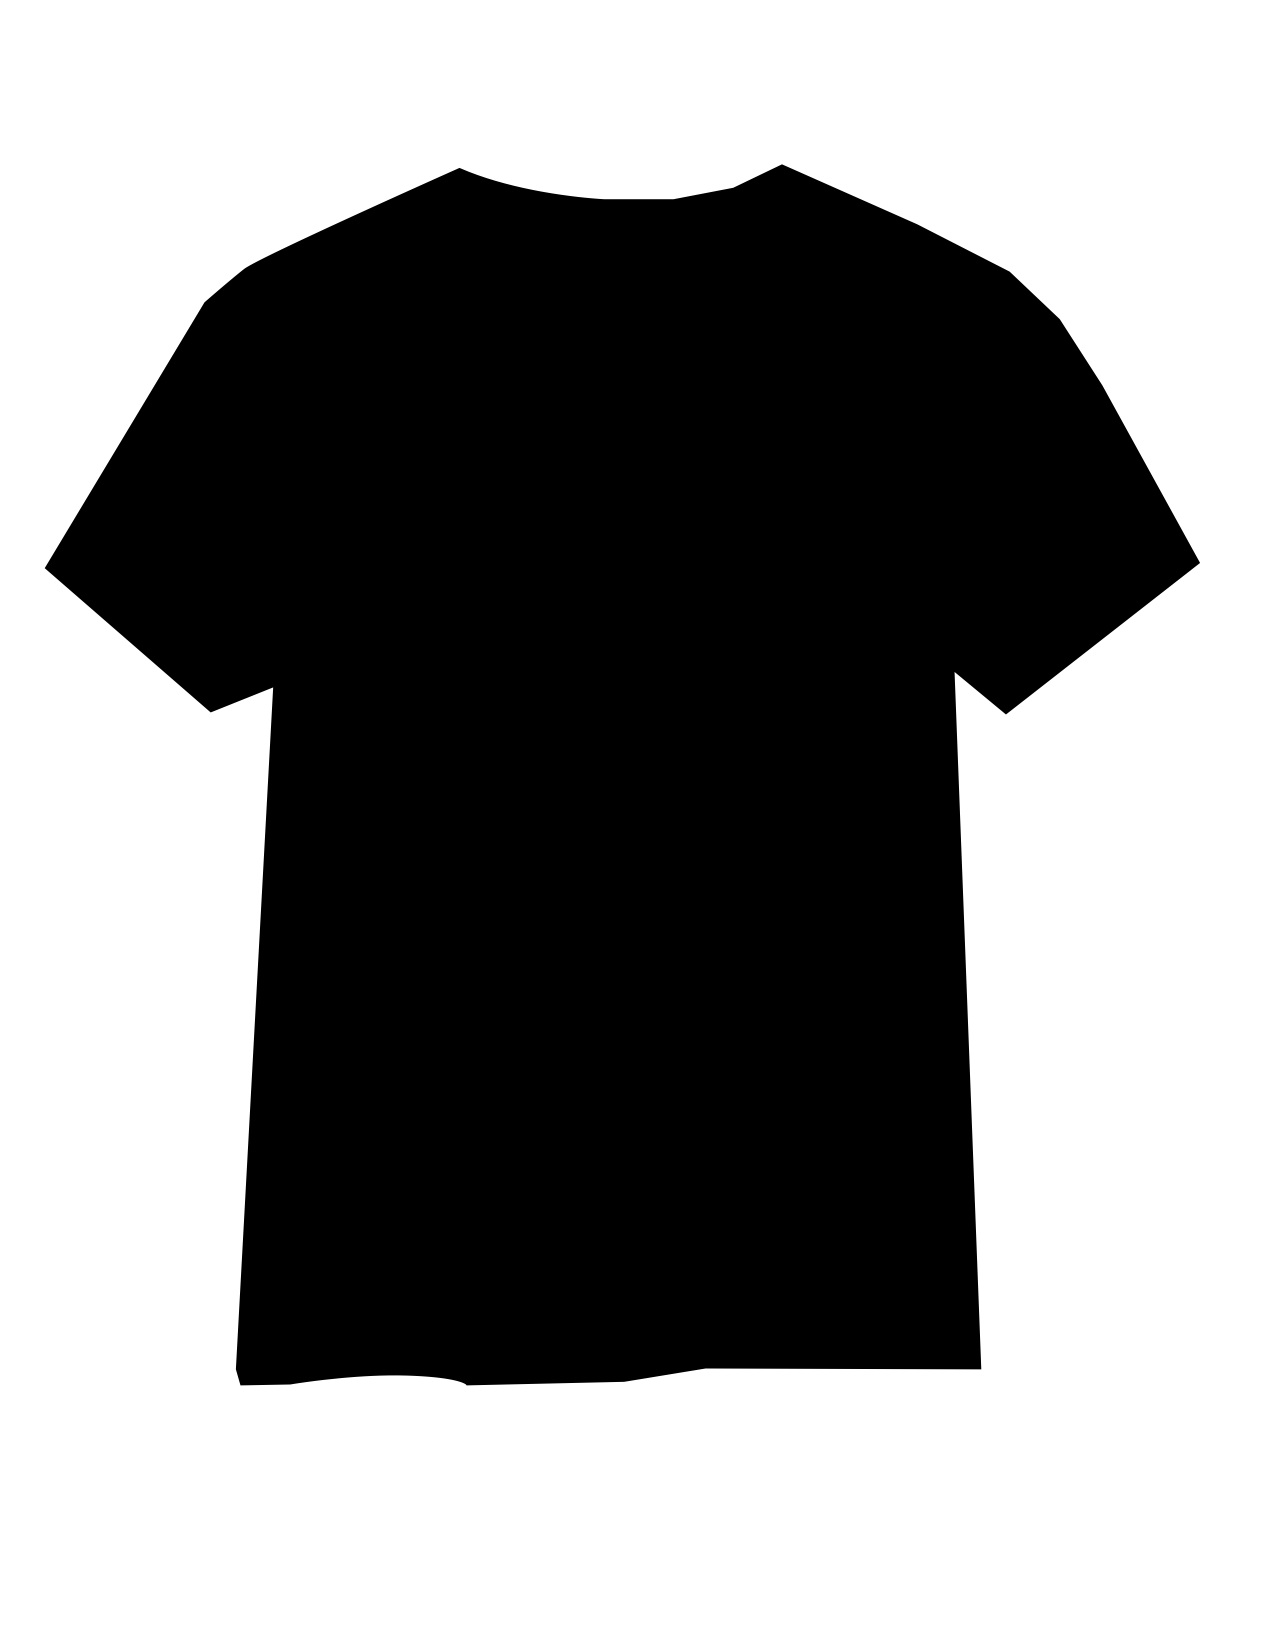 black t shirts template - photo #10